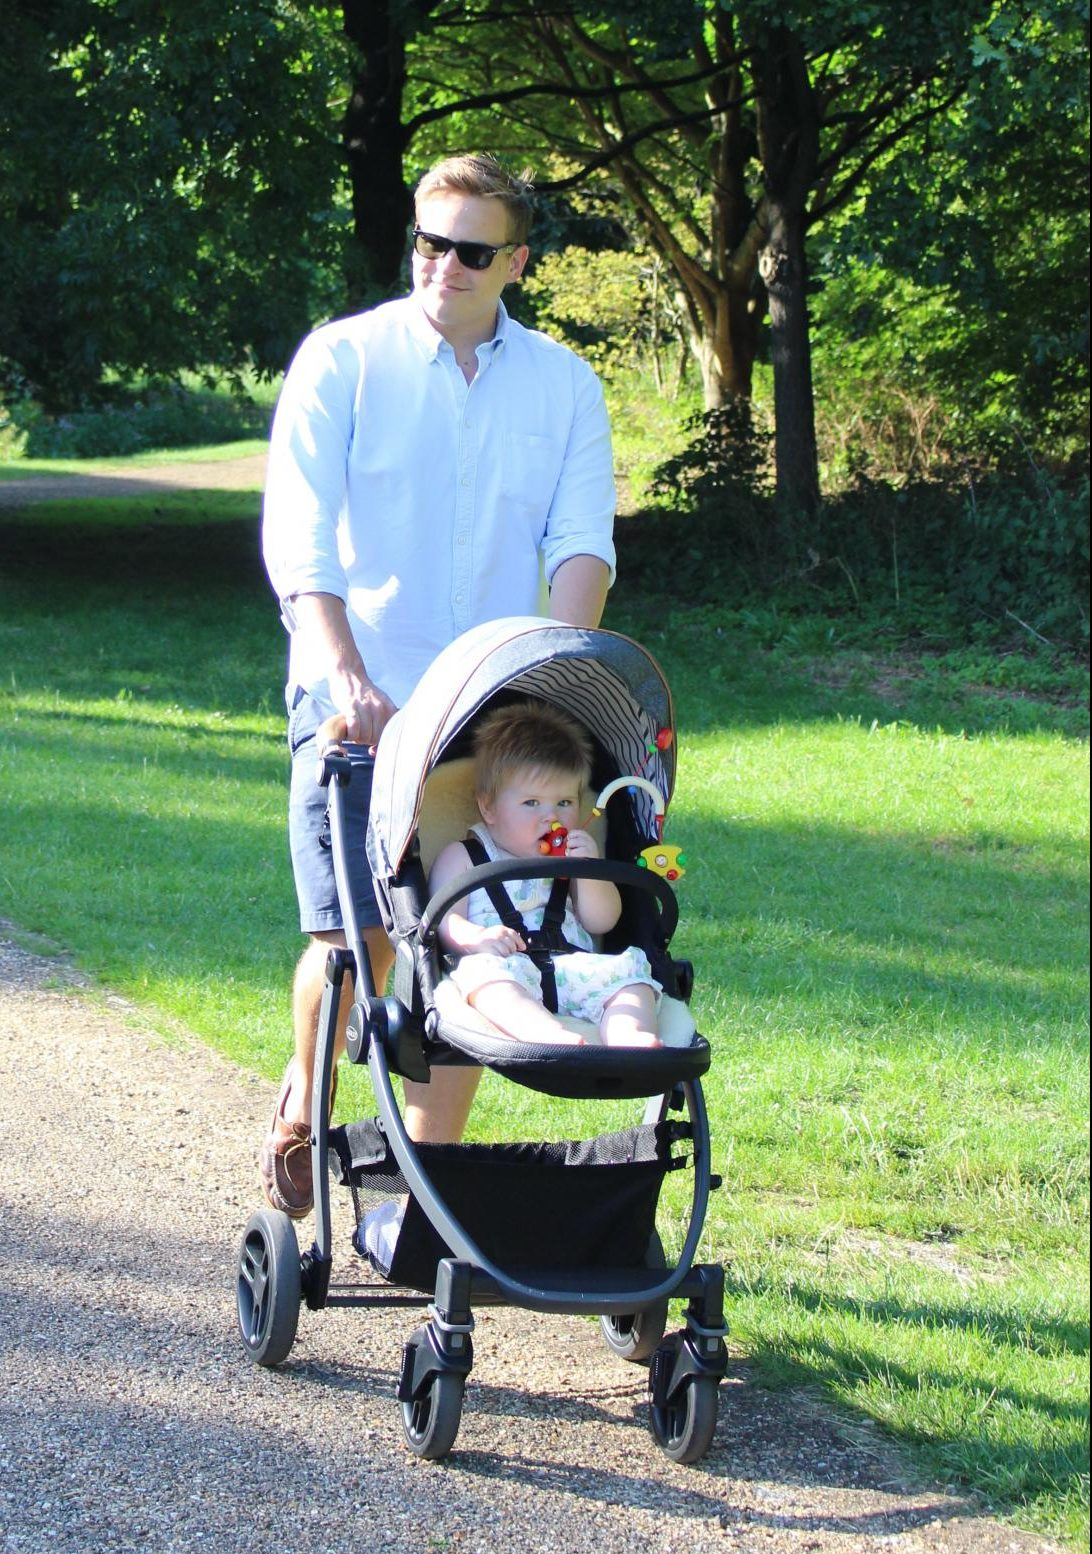 Graco Evo pushchair - top choice for dads